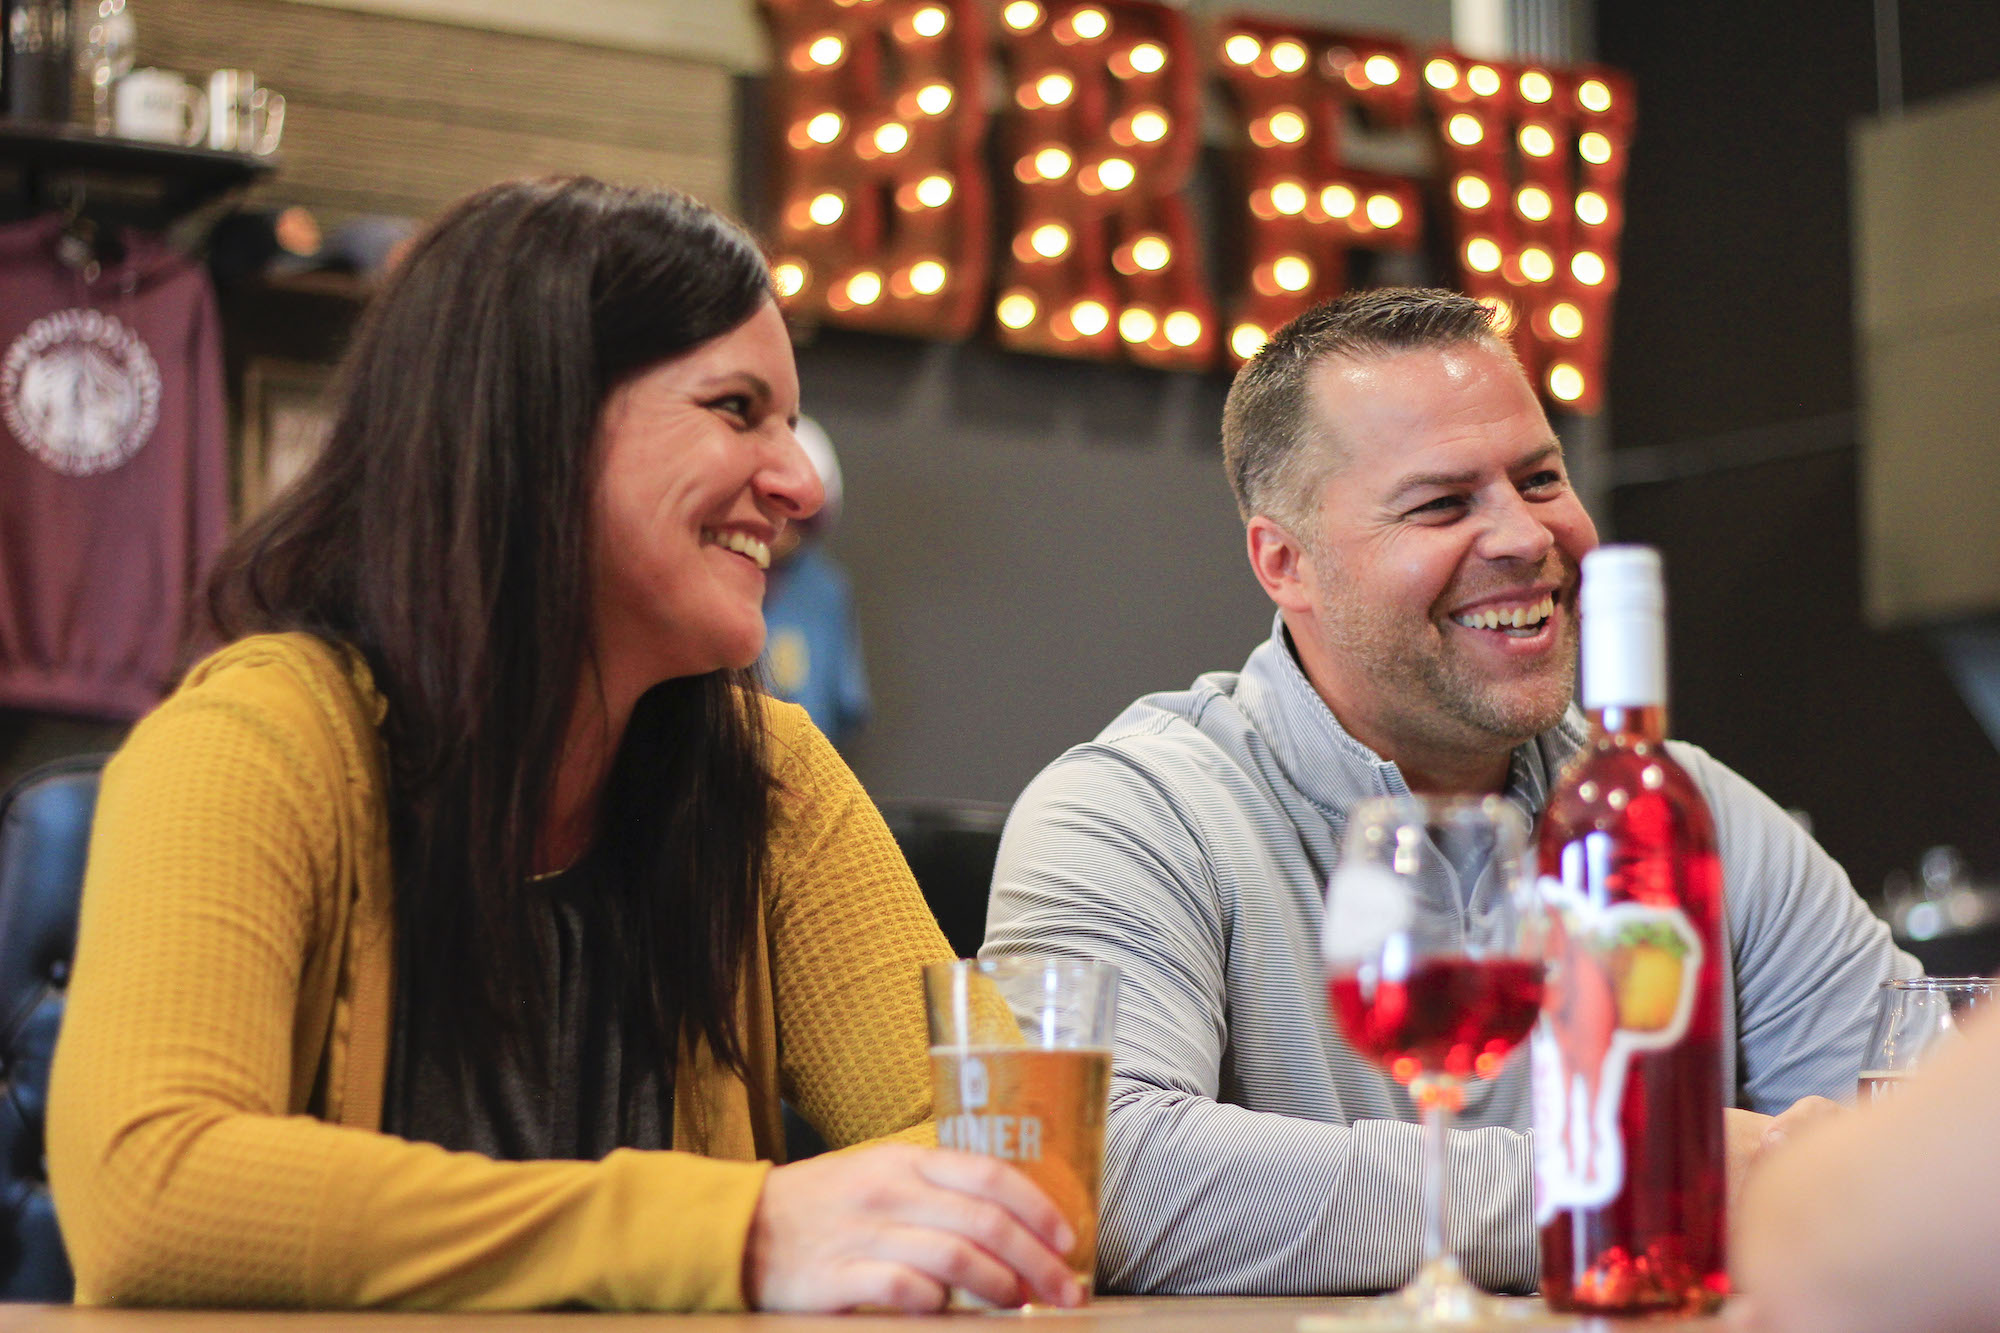 Guests in Sioux Falls, South Dakota, can enjoy Miner Brewing craft beer and Prairie Berry Winery wines at our Taproom located at the Western Mall.